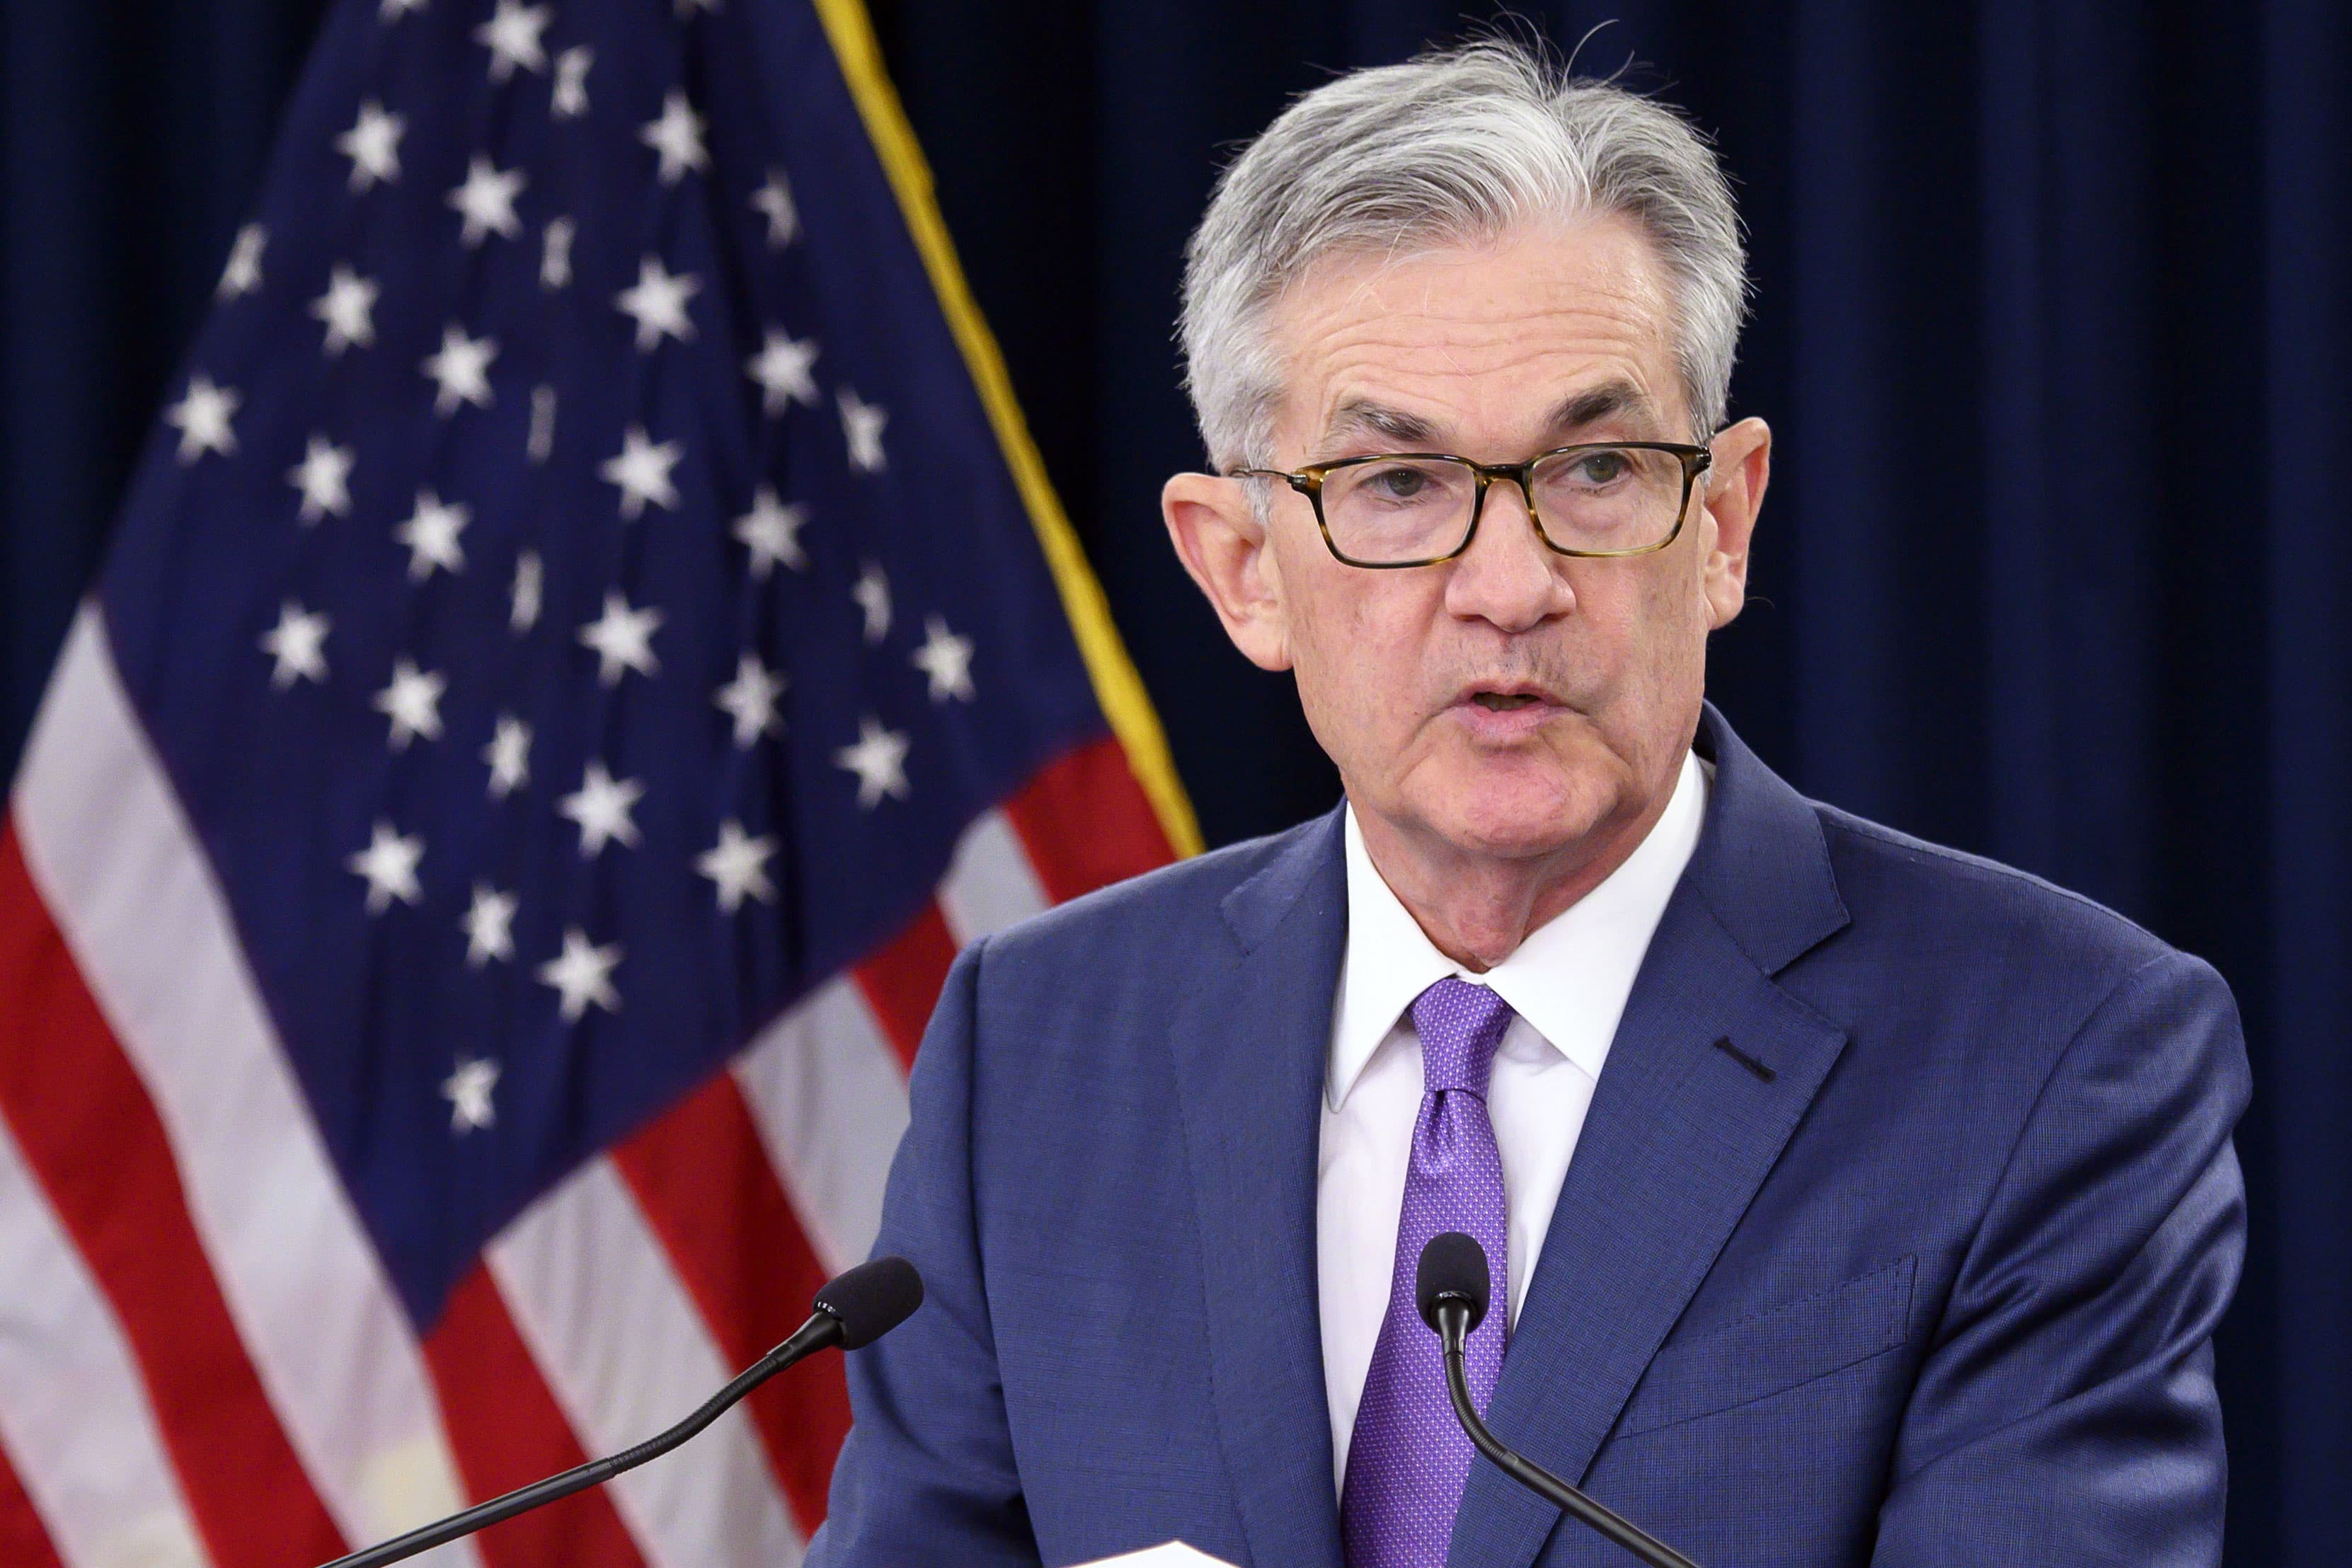 FED CUTS RATE BY A QUARTER POINT, CITES 'GLOBAL DEVELOPMENTS,' 'MUTED INFLATION'